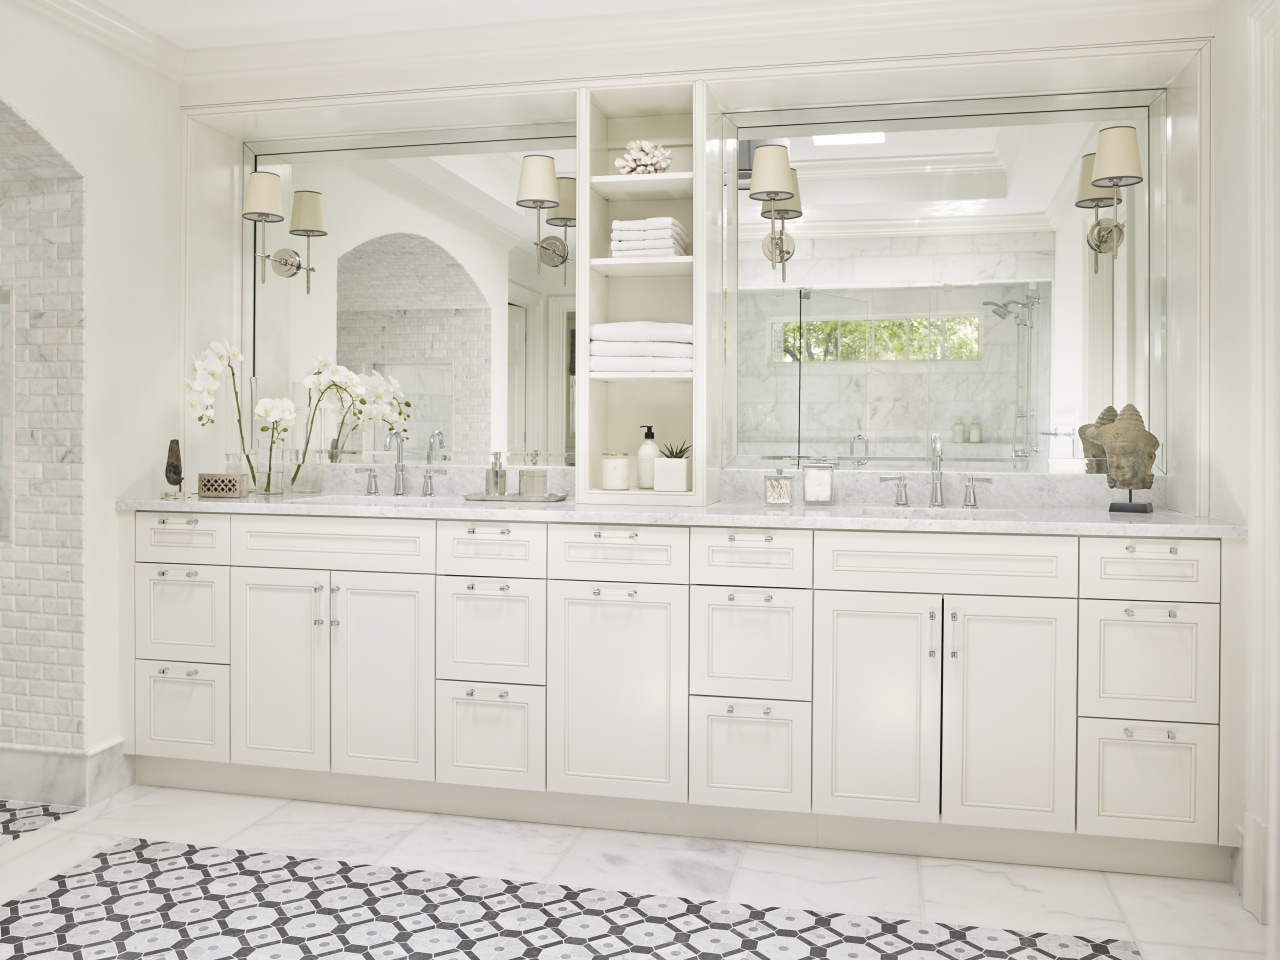 ​​​​​​​Cabinetry in this large vanity is finished in bathroom, bathroom accessory, bathroom cabinet, cabinetry, furniture, interior design, basin, tap, white, traditional, Mark Williams Design